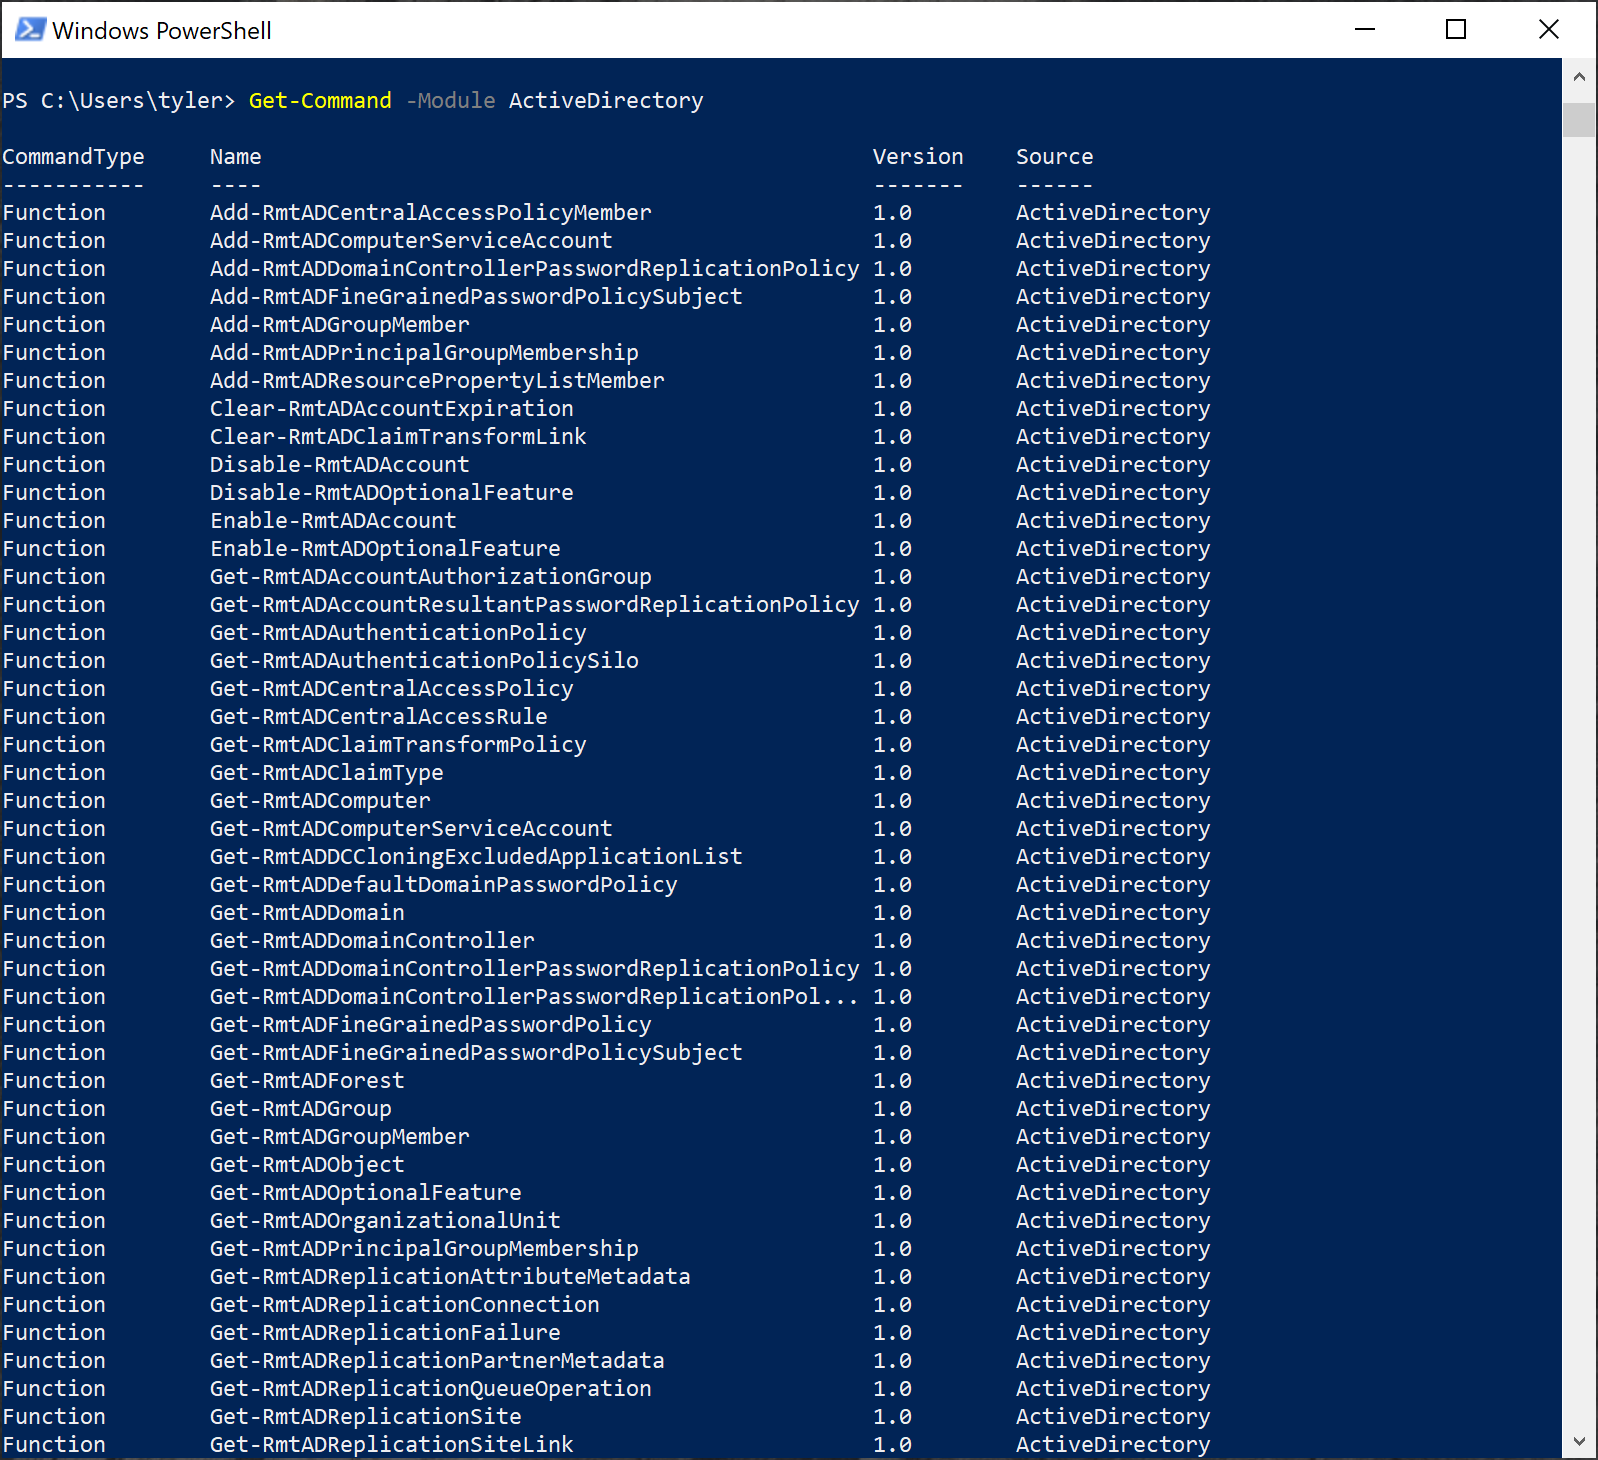 Viewing all available commands in a module